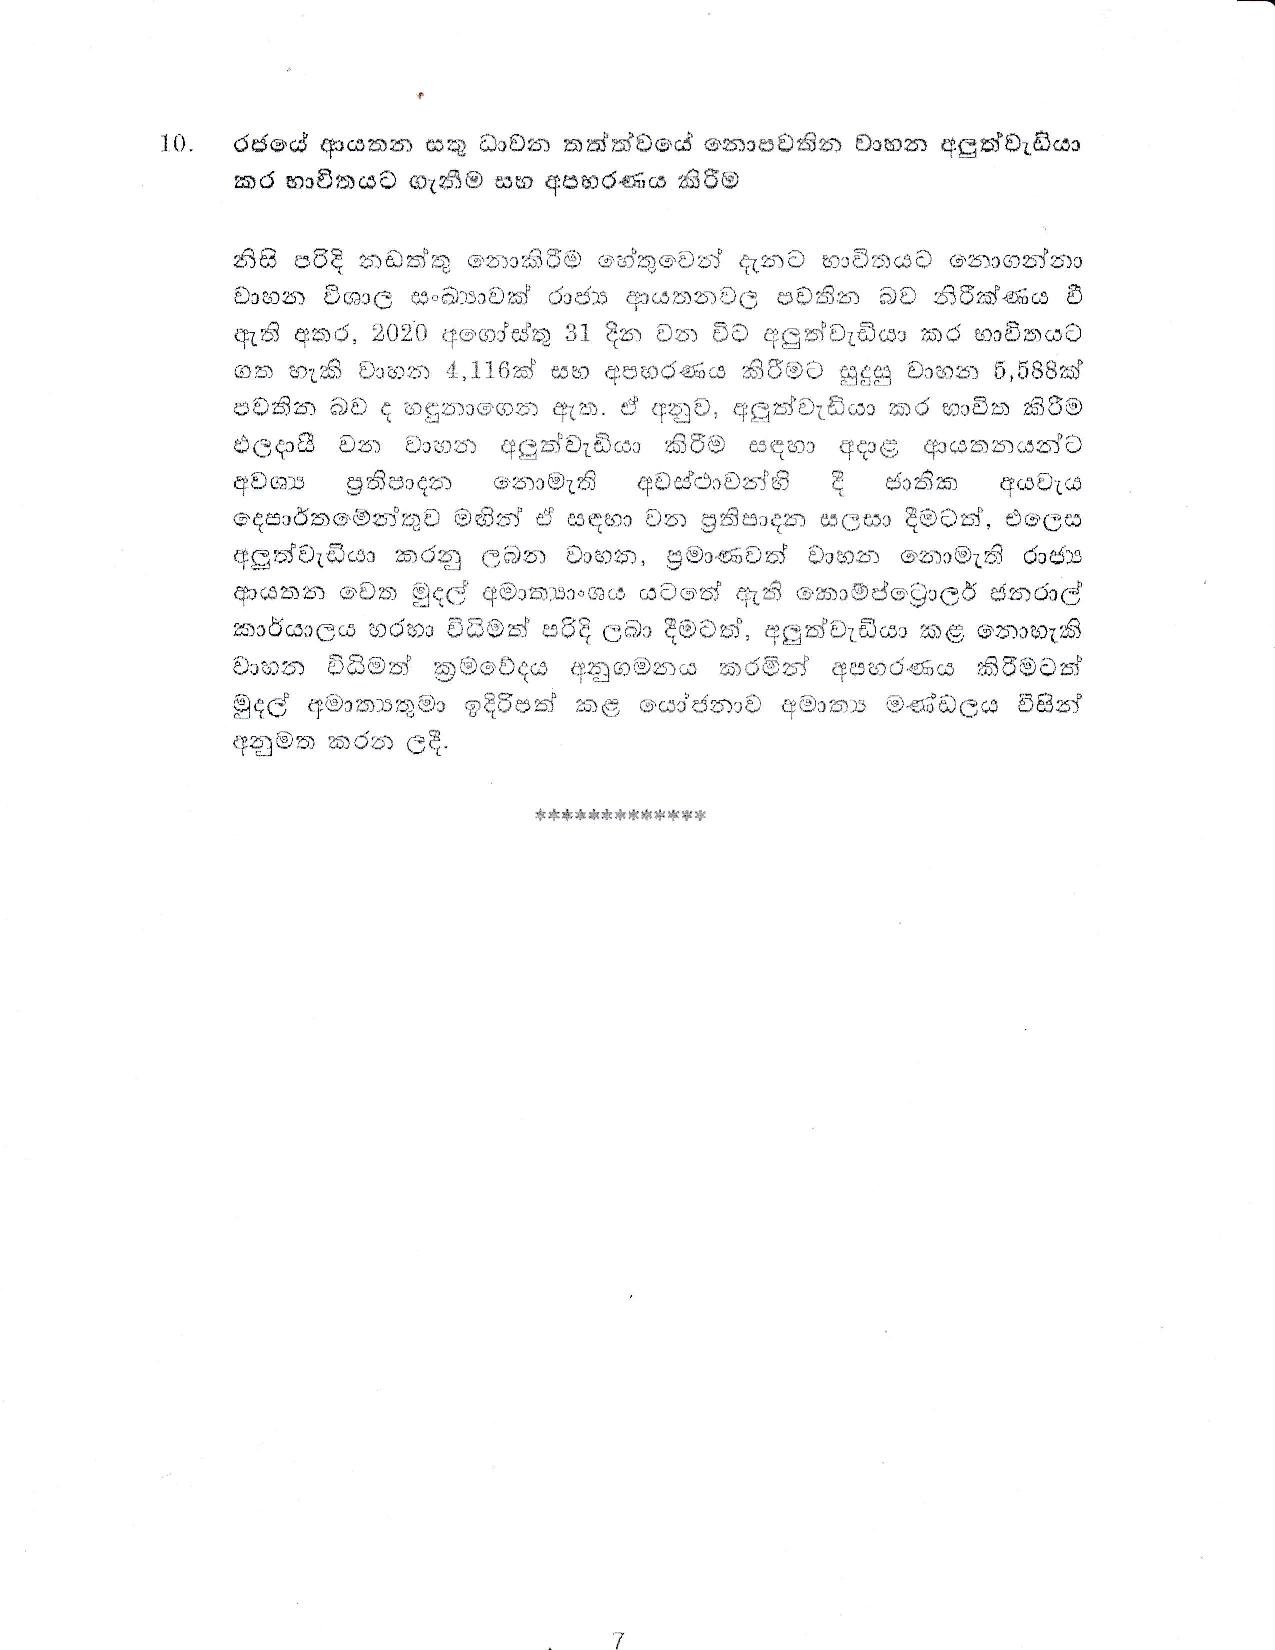 Cabinet Decision on 02.09.2020 Sinhala page 007